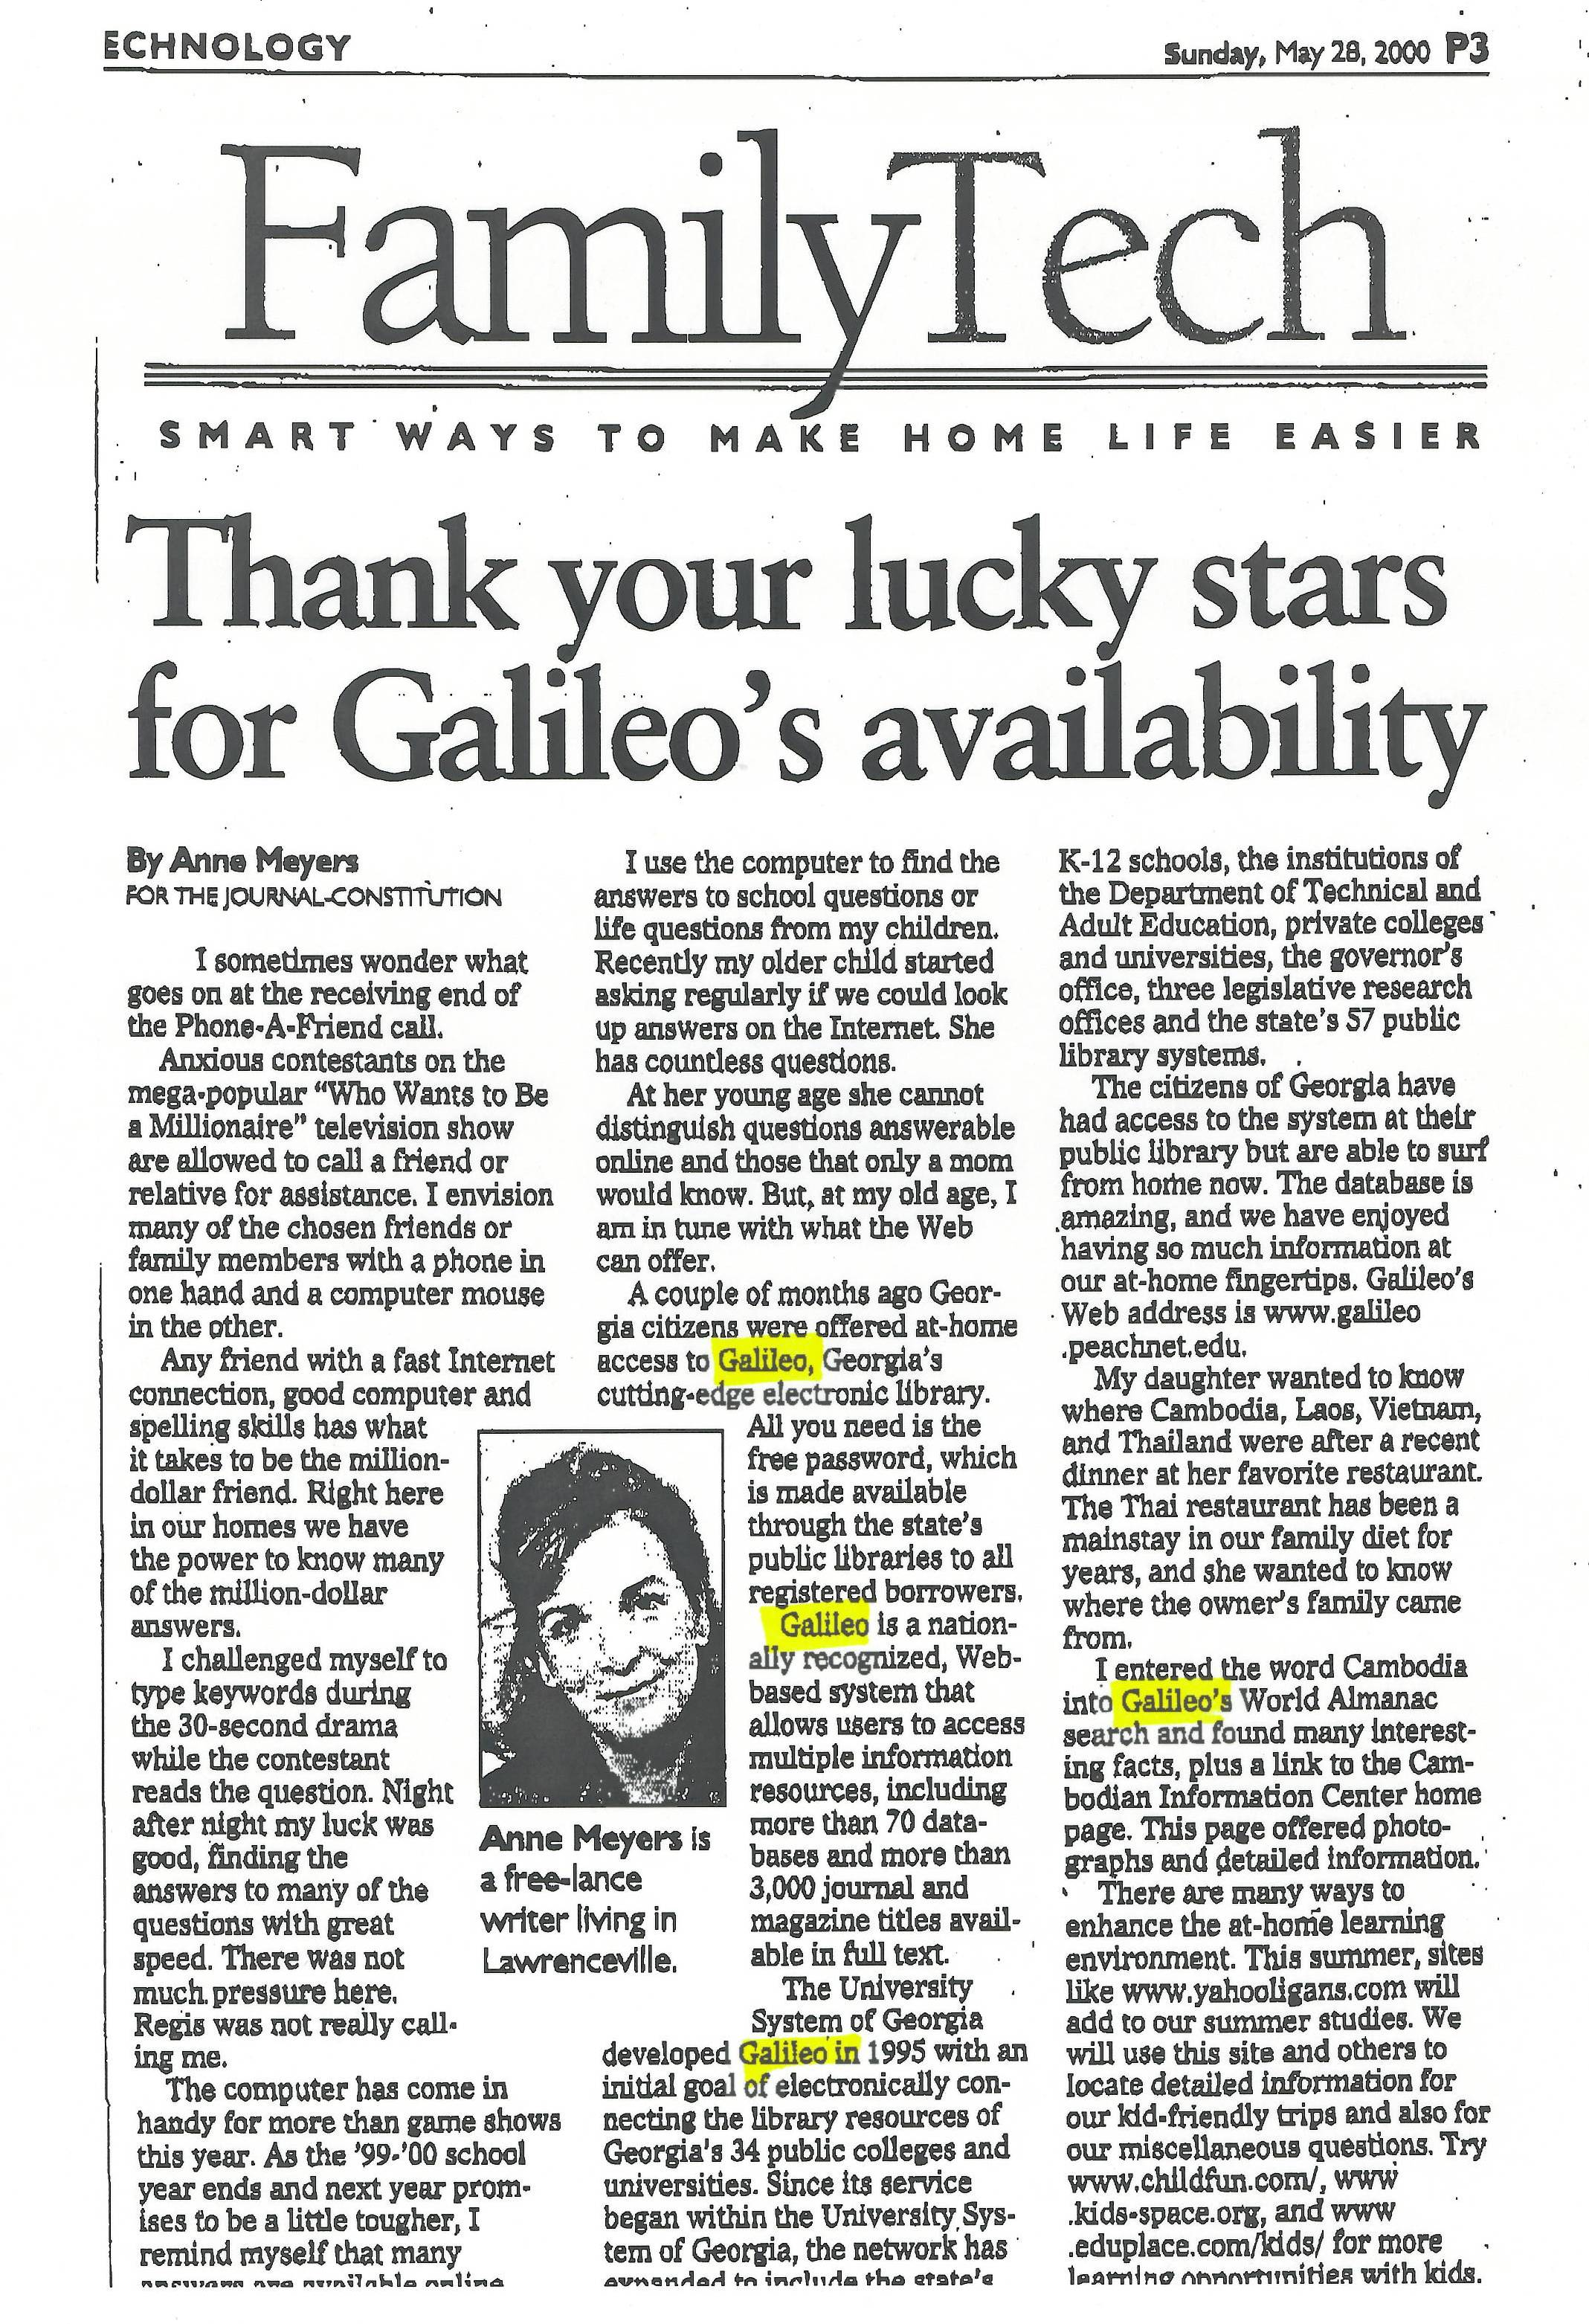 Article Thank Your Lucky Stars For Galileo S Availability